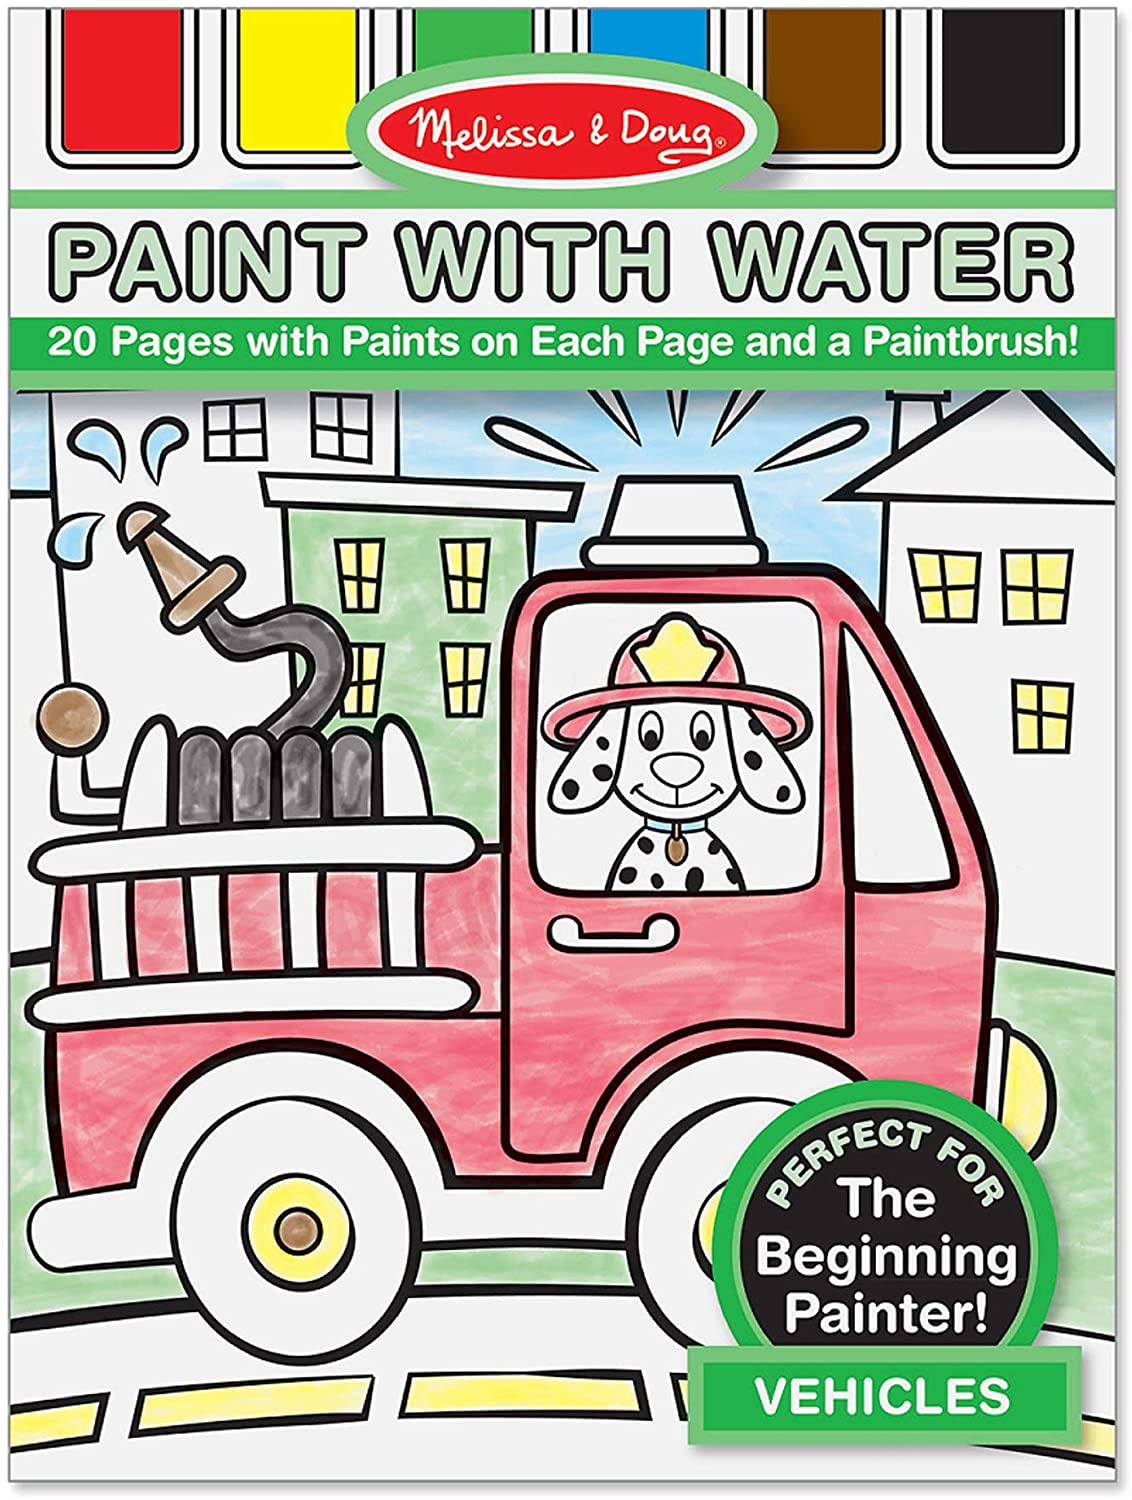 Melissa Doug Paint With Water - Perforated 20 Industry No. 1 Vehicles Credence Pages